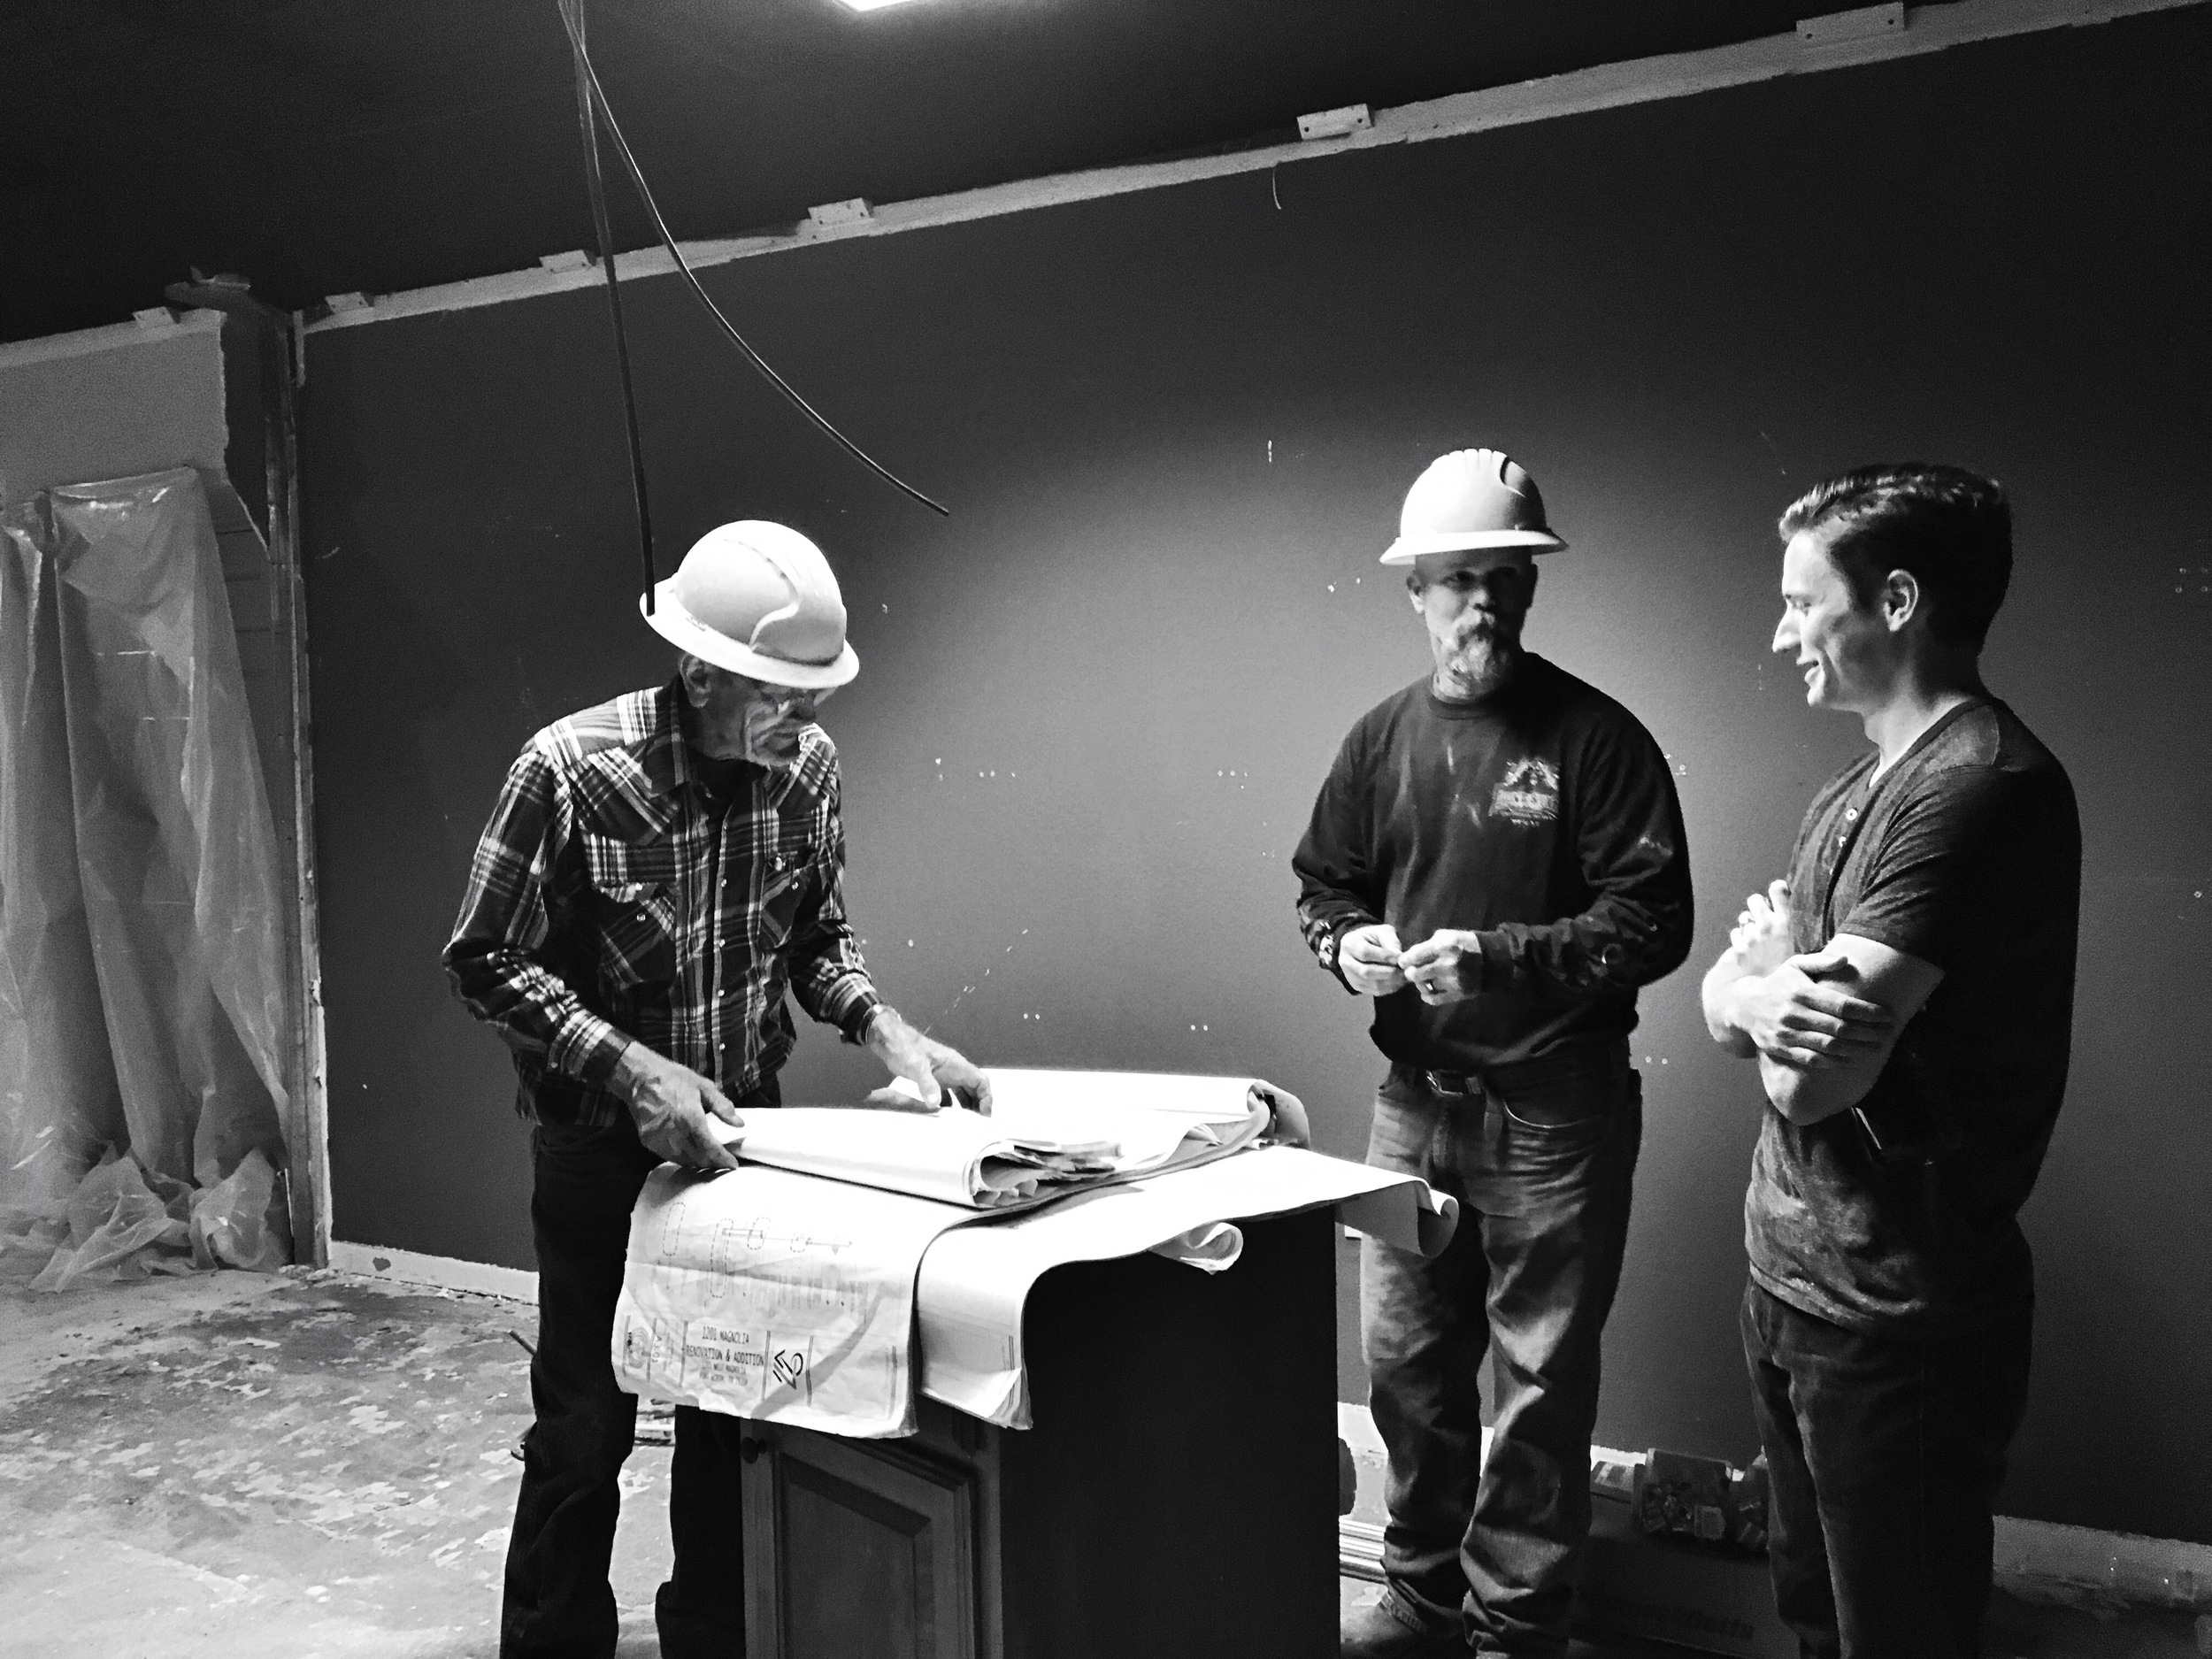 Co-owner Mark chatting with contractors